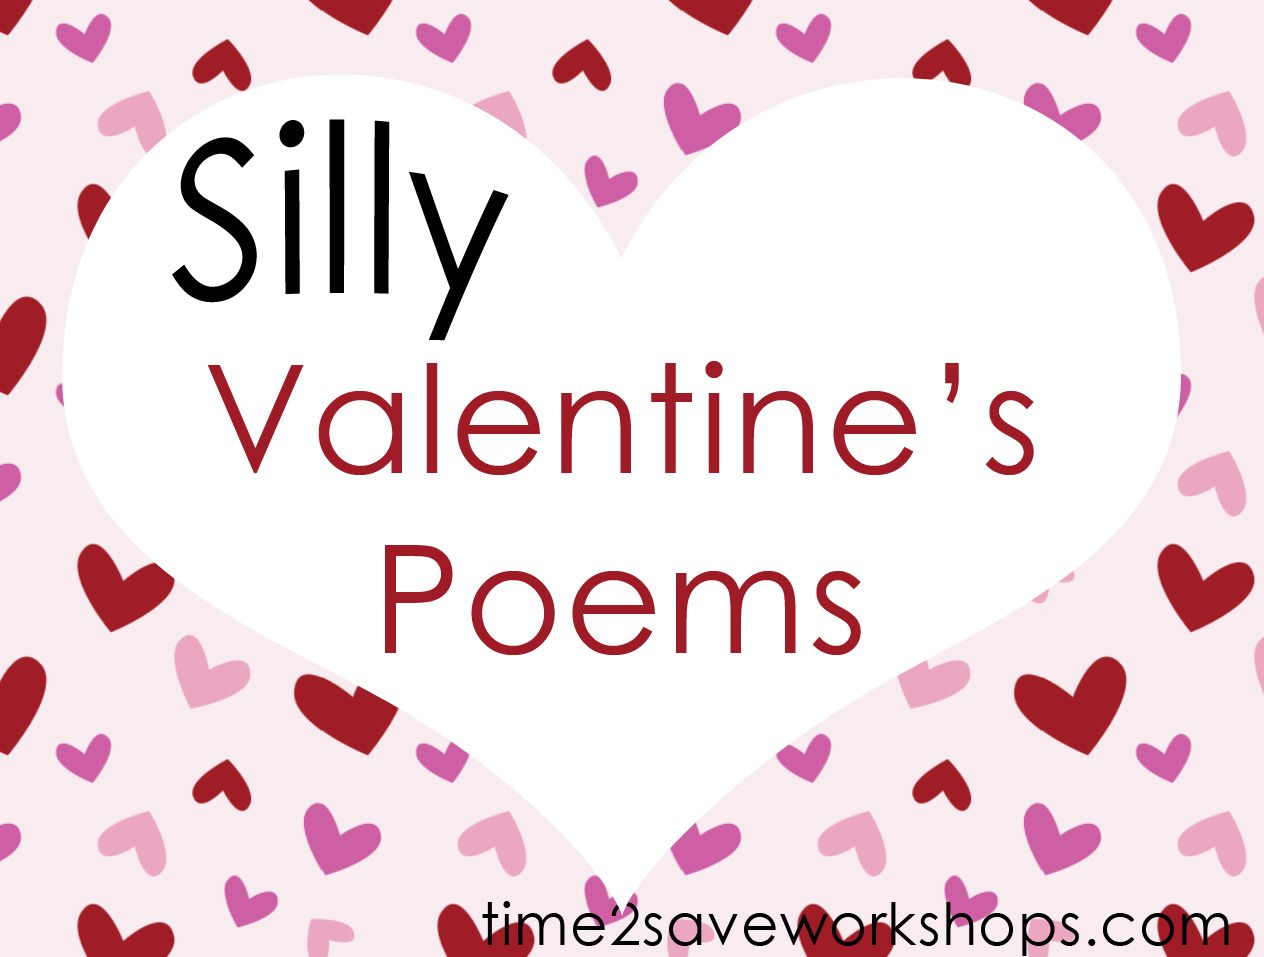 Silly Poems Valentine S Fun With Words Poems For Children